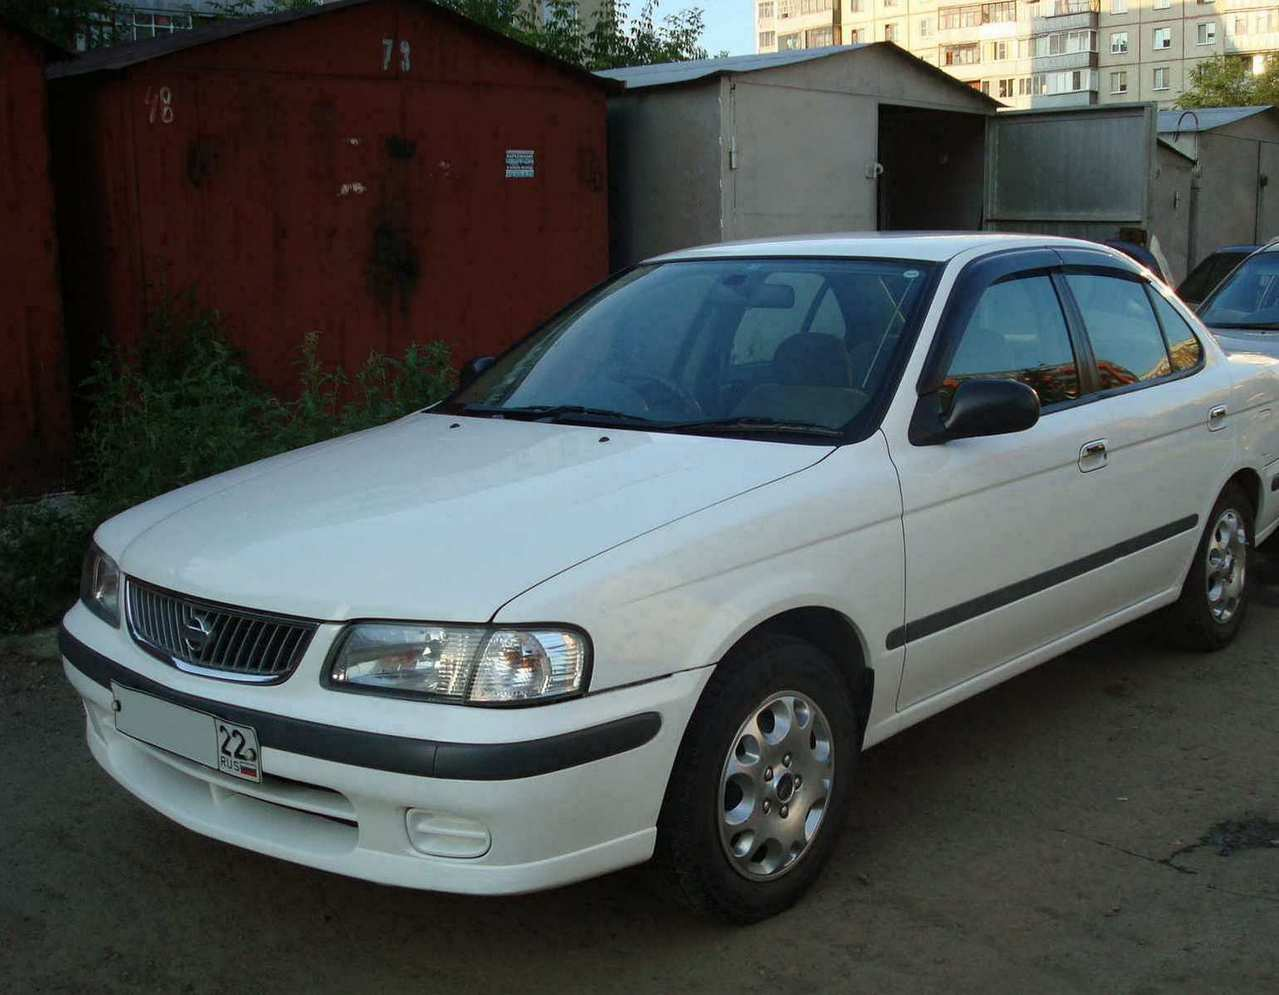 1999 Nissan Sunny Photos, 1.5, Gasoline, FF, Automatic For ...